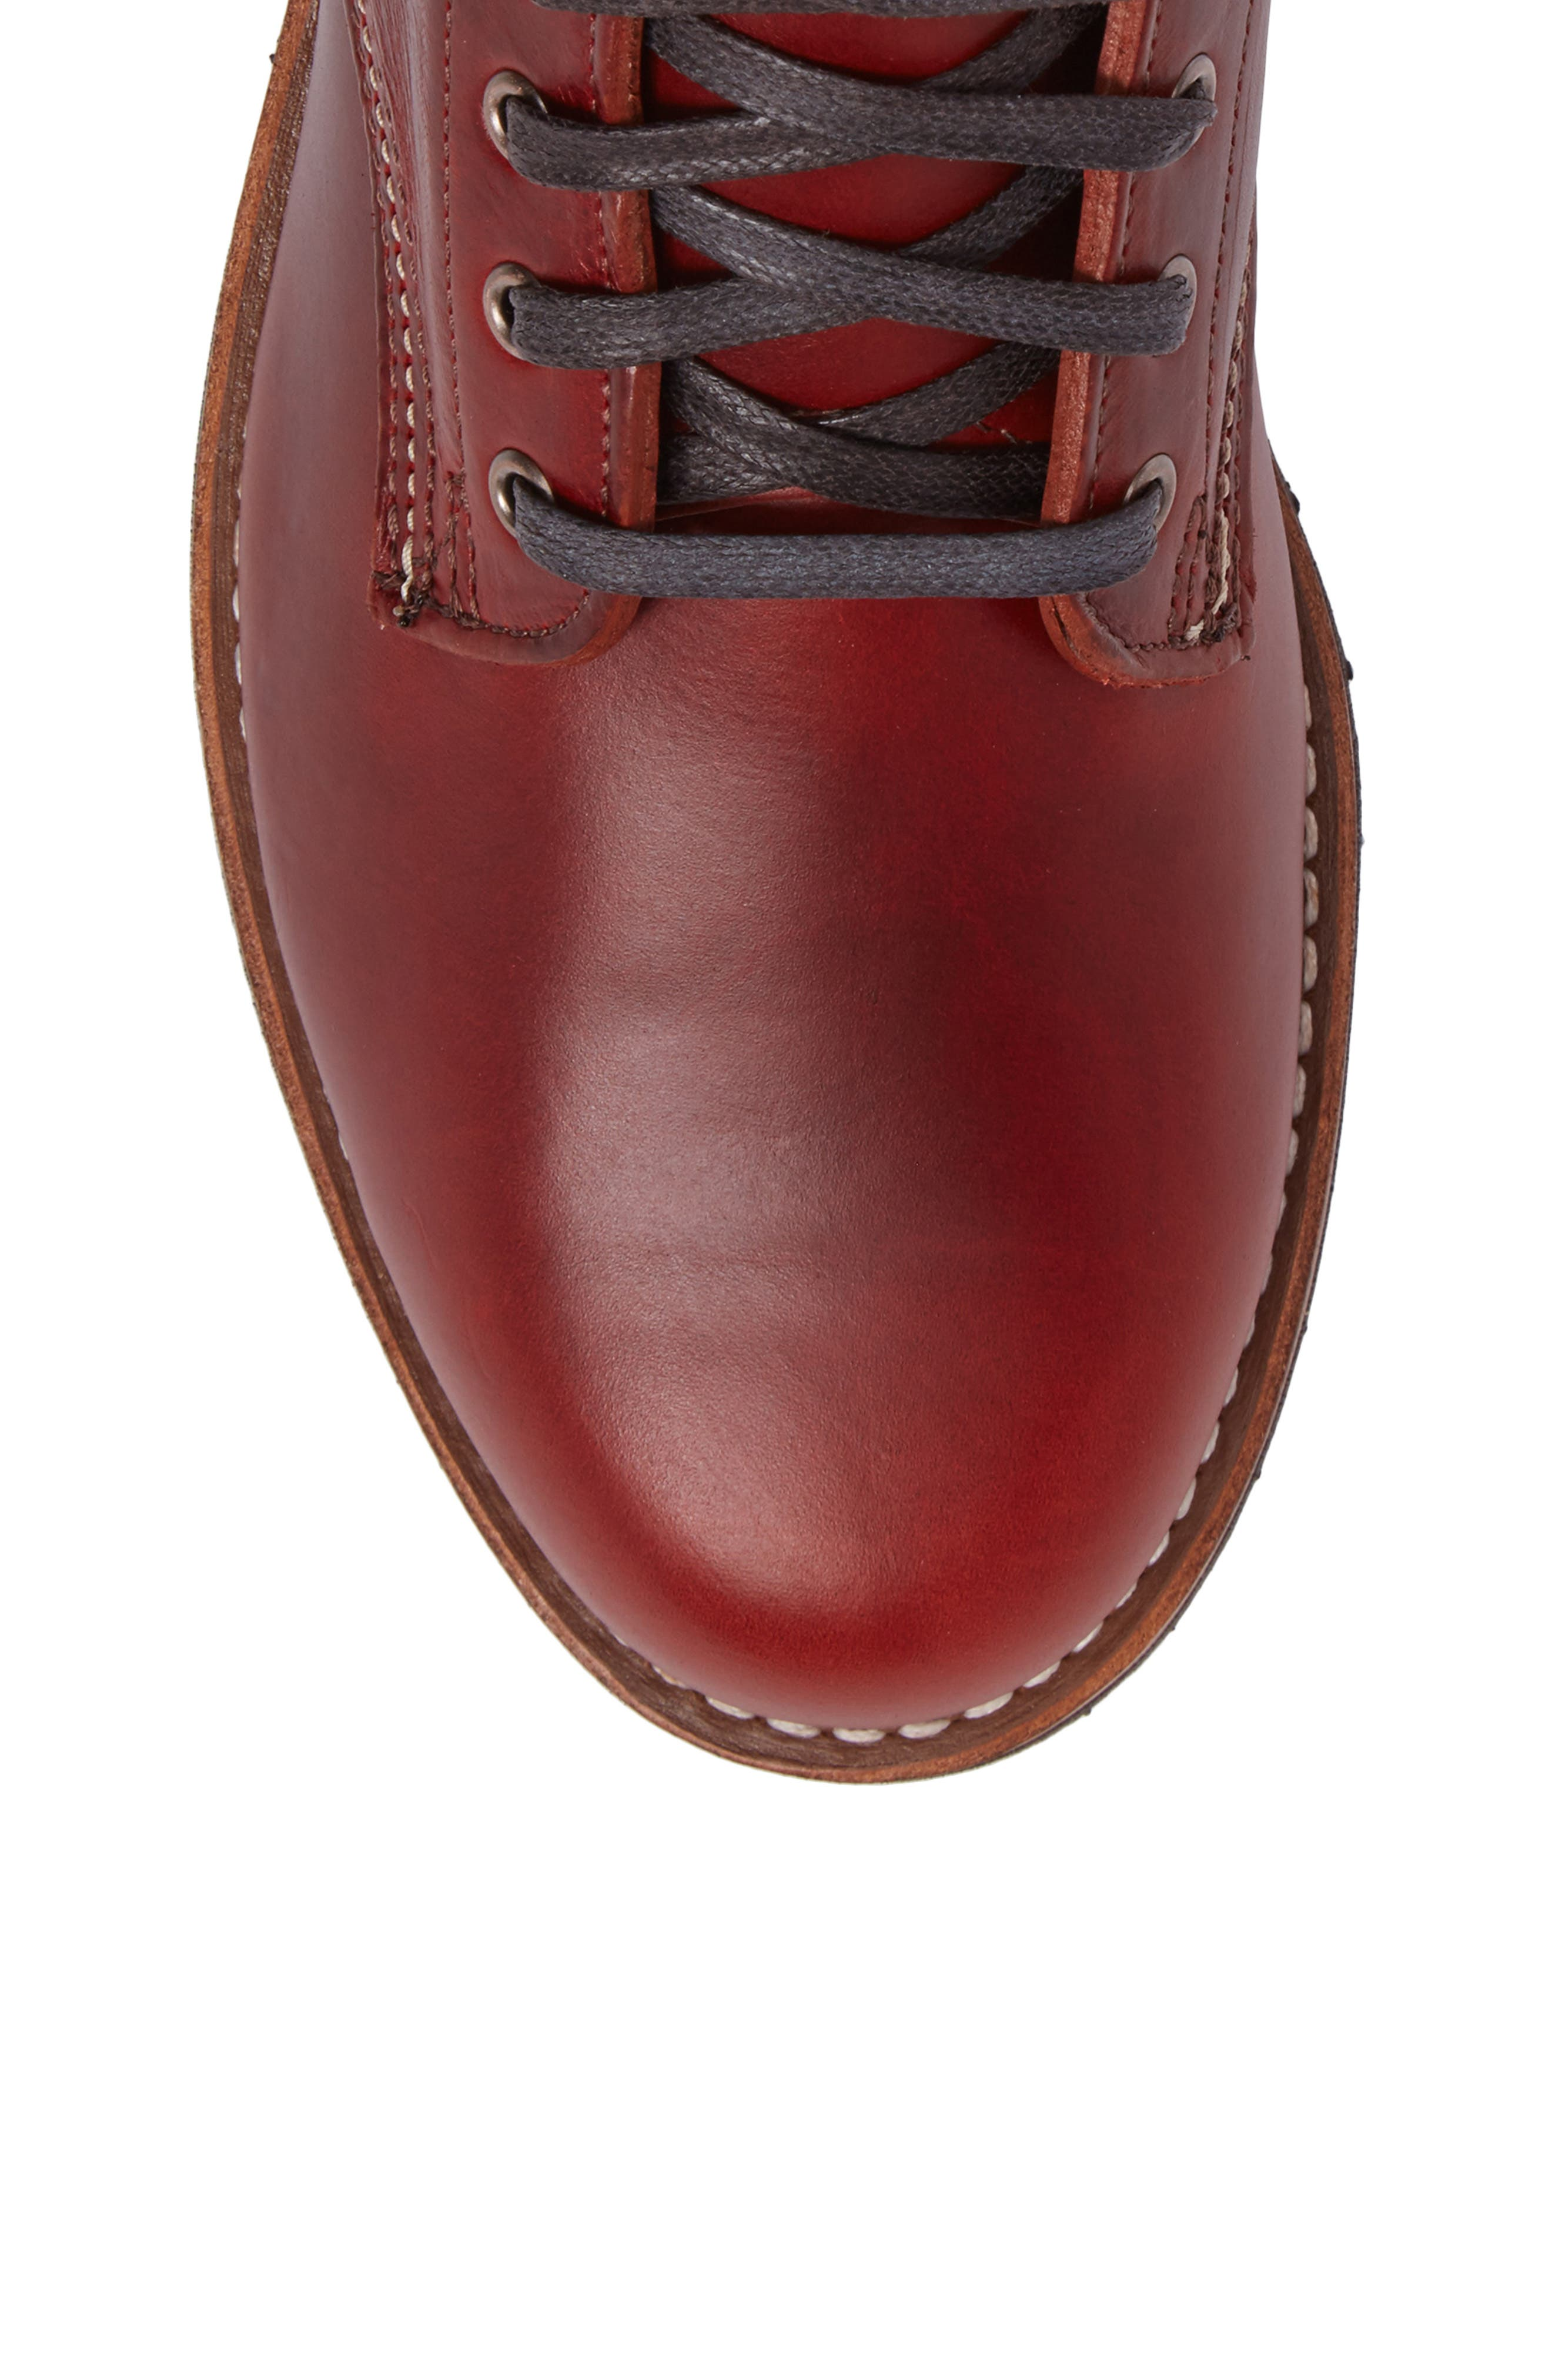 Evans Plain Toe Boot,                             Alternate thumbnail 5, color,                             Red Leather